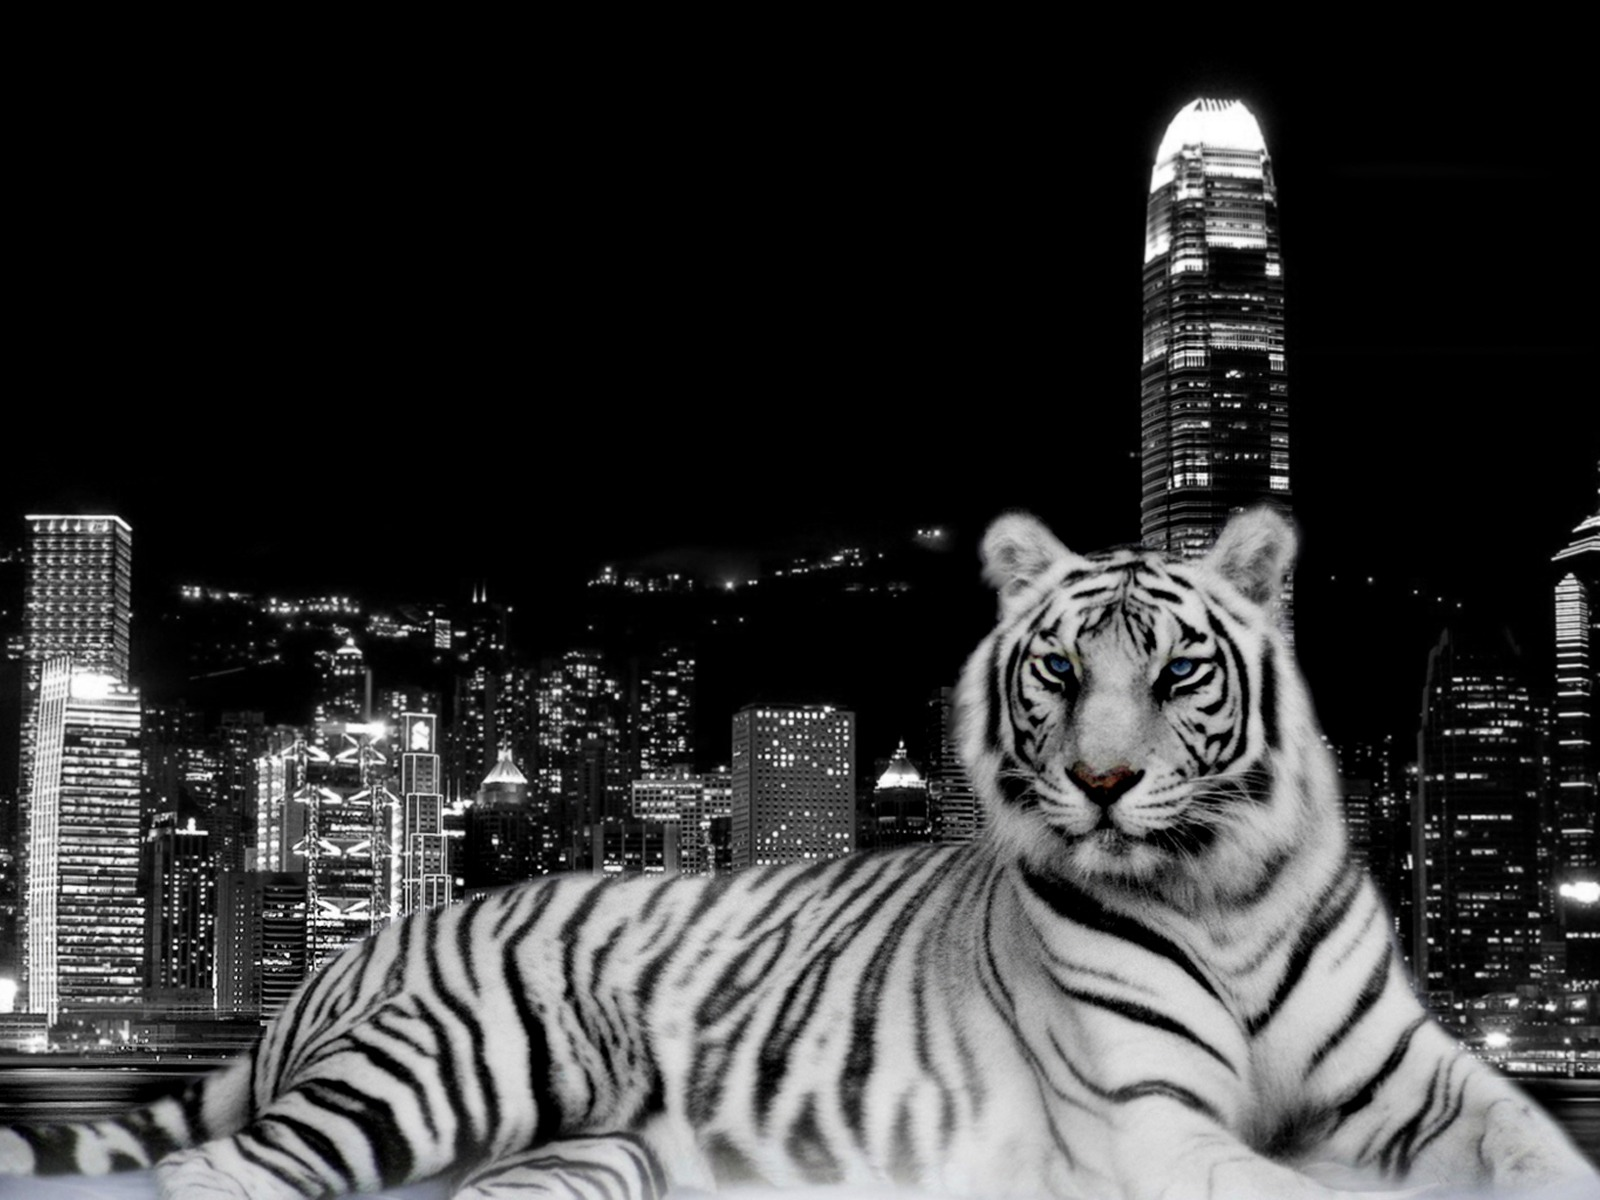 Tiger wallpapers hd free download - Tiger hd wallpaper for pc ...